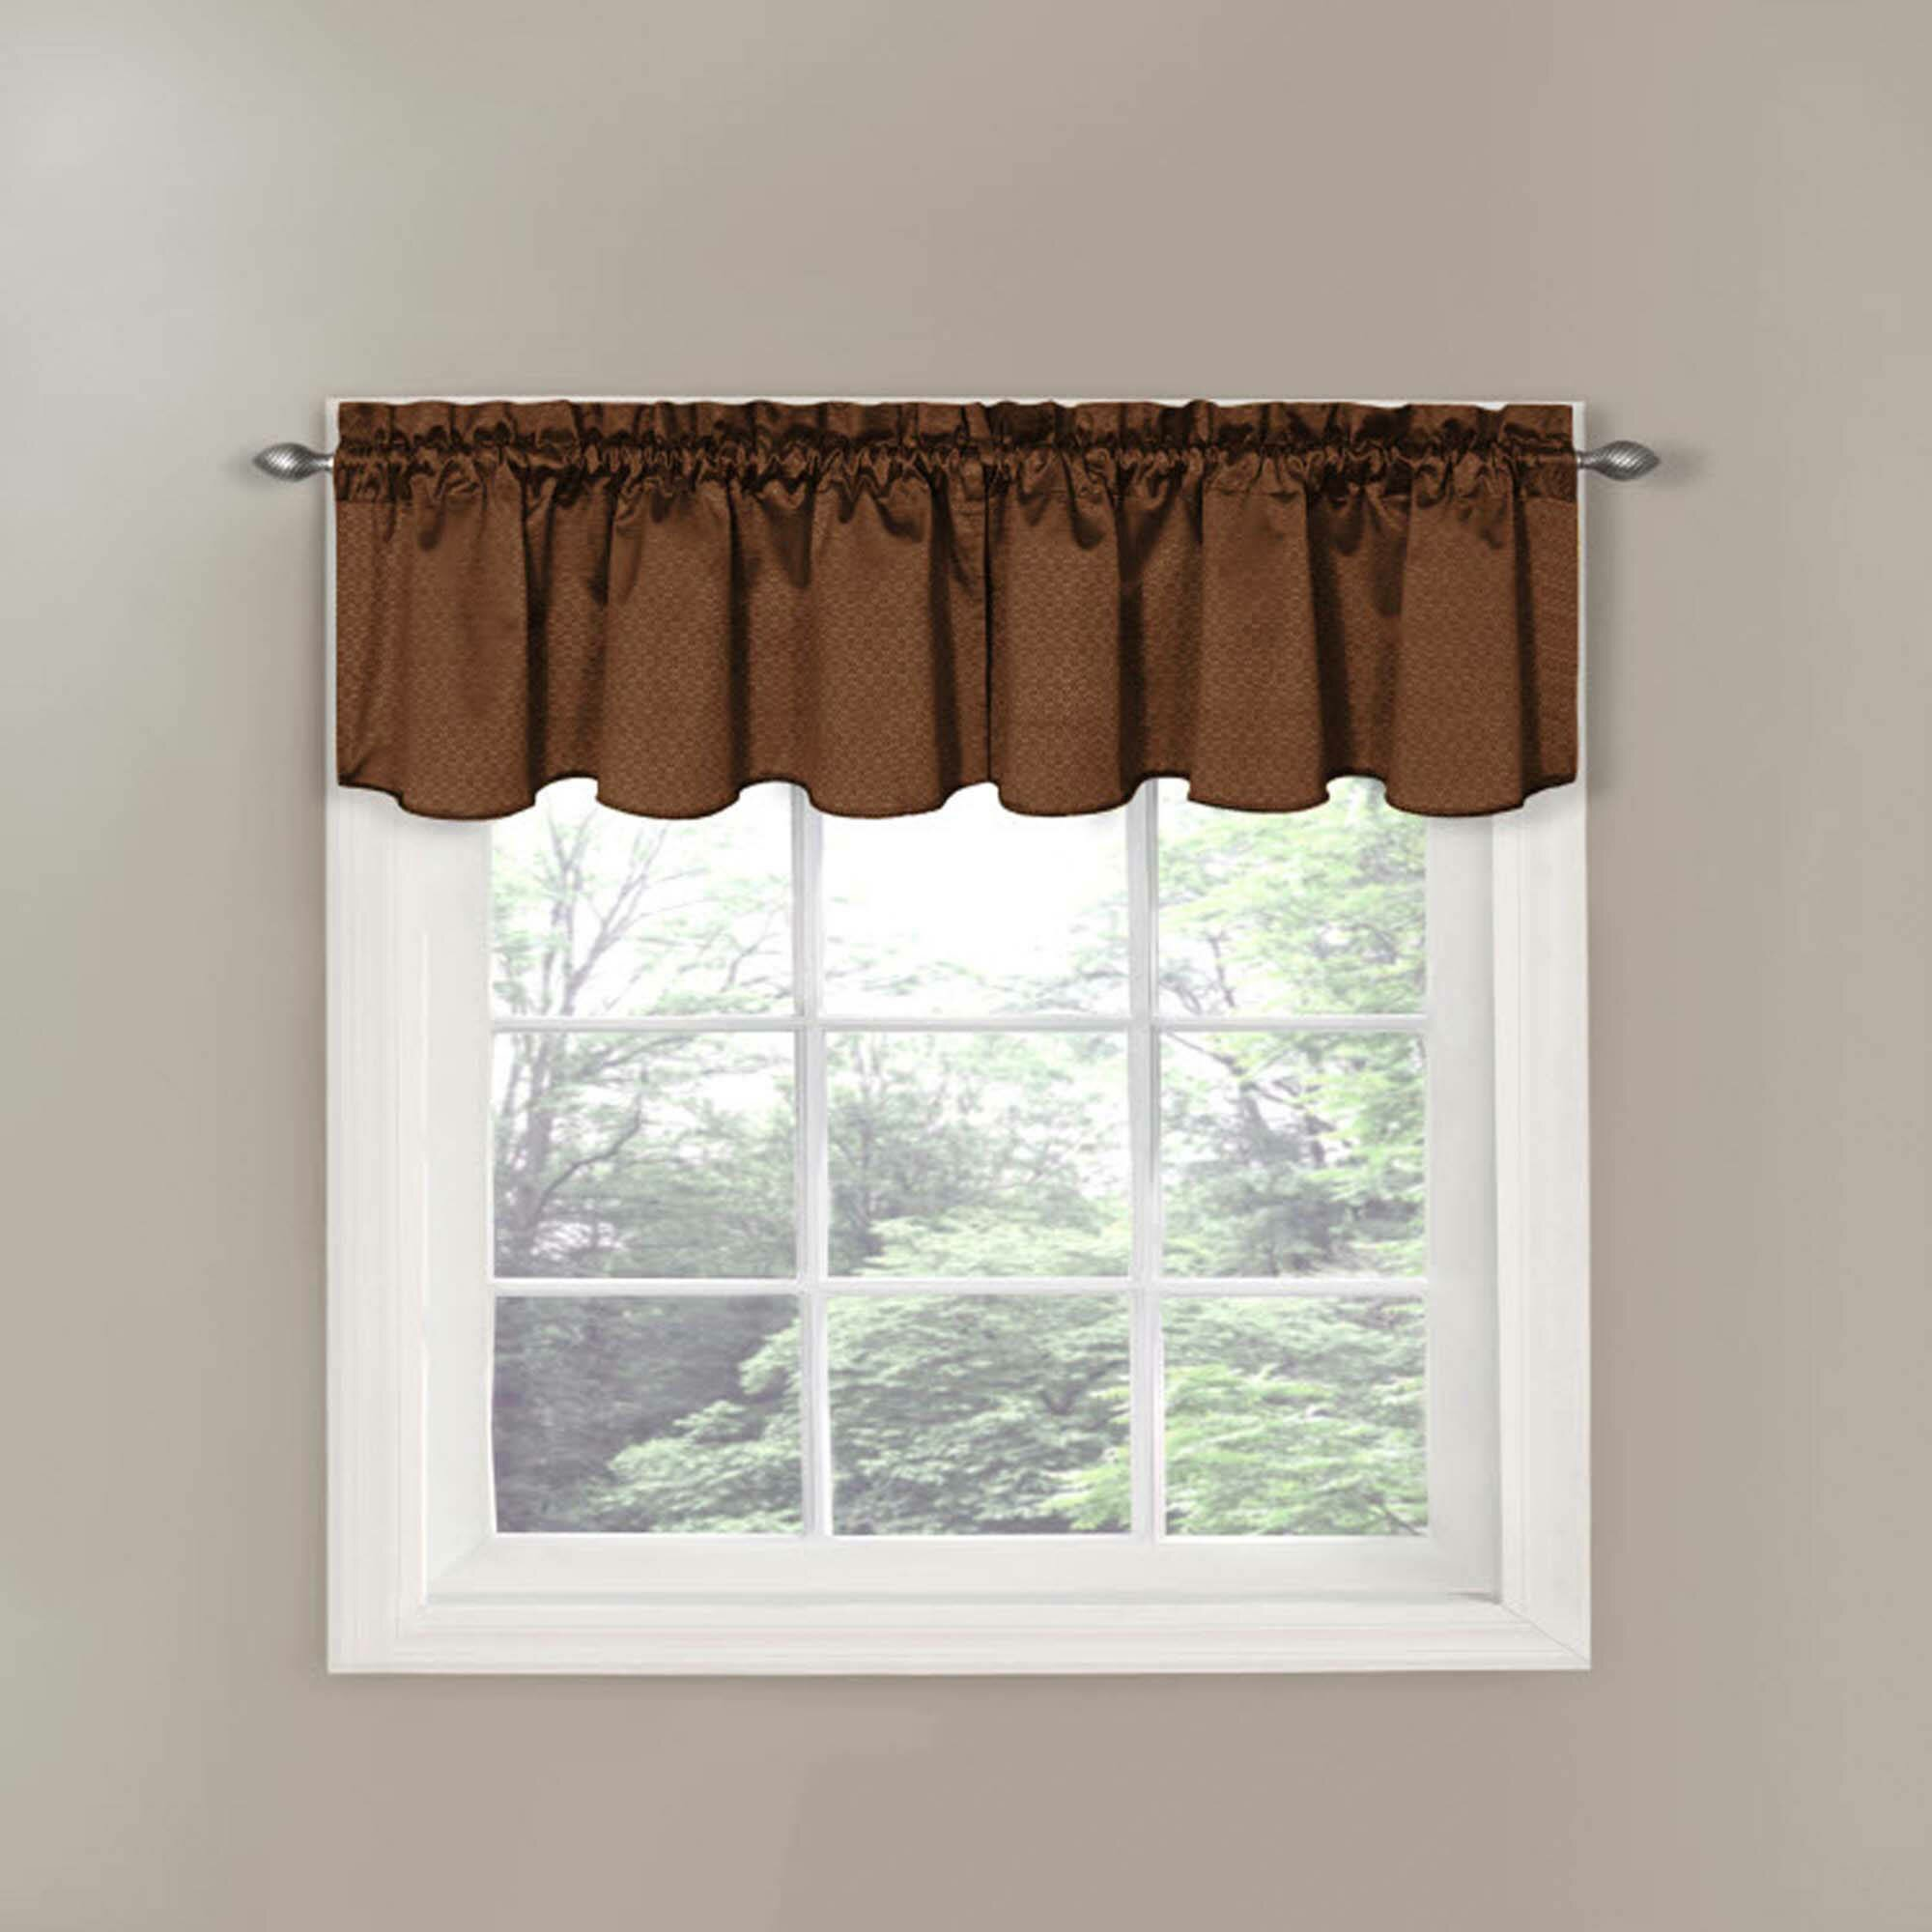 Living Room Valances | Small Valances for Windows | Bedroom Valances for Windows